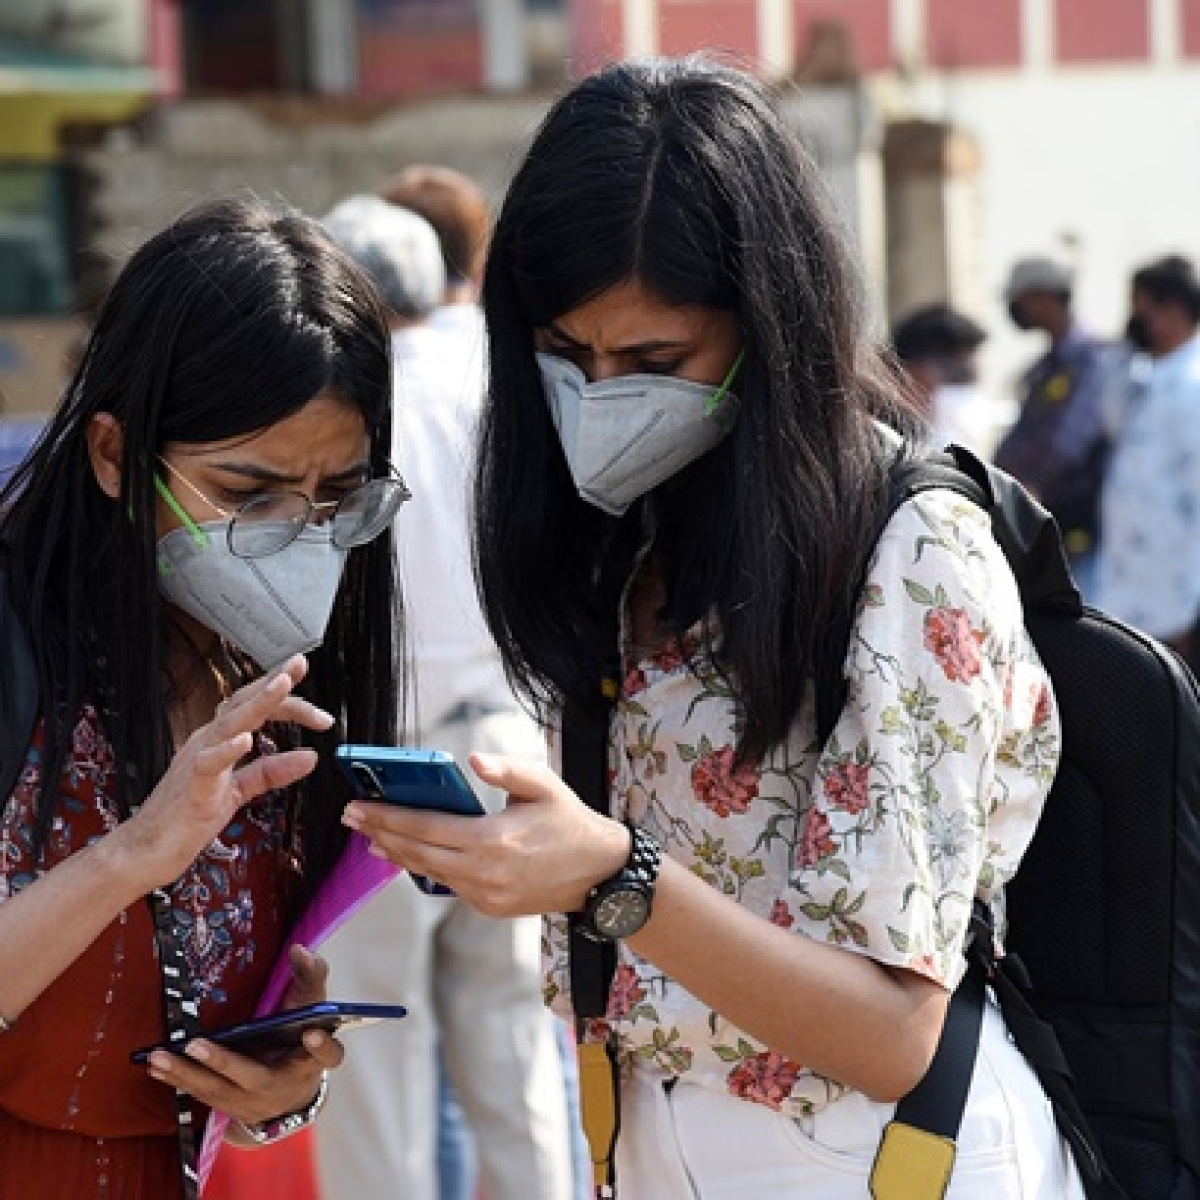 Coronavirus in Navi Mumbai: NMMC's Swachh Radio garners 25,000 listeners in just 45 days